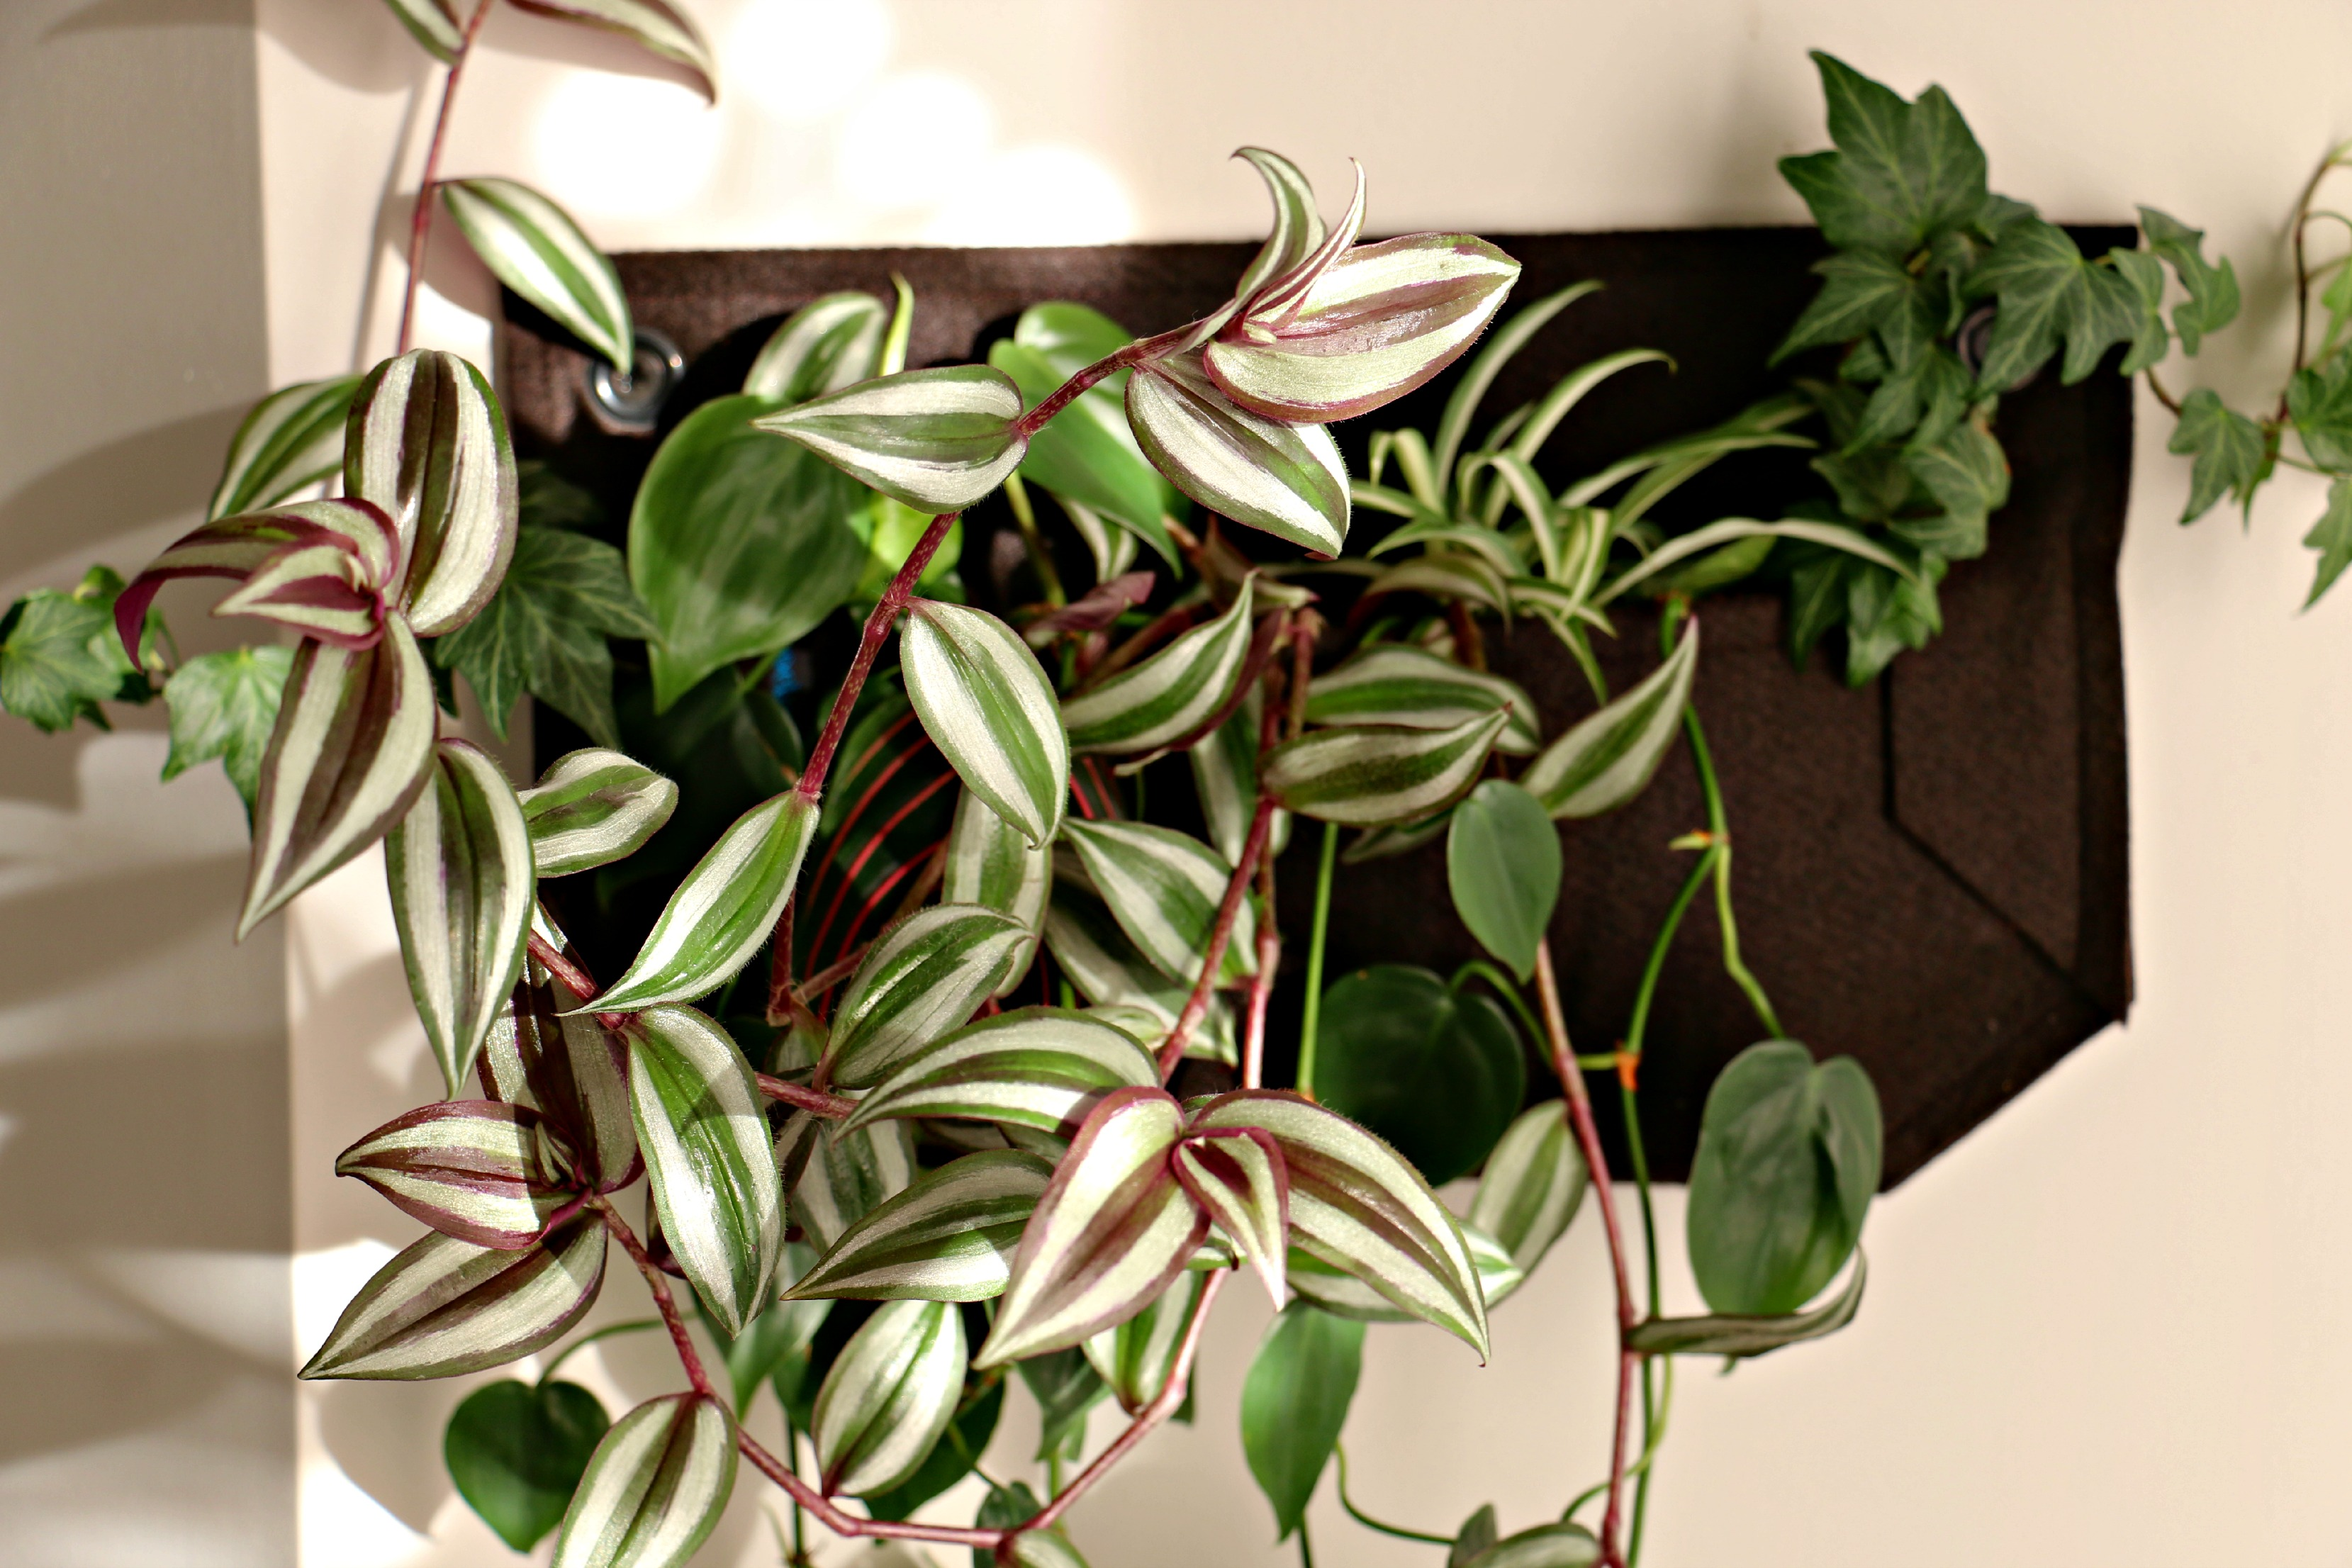 Product Review: Vertical Planters|Woolly Pocket Living Walls